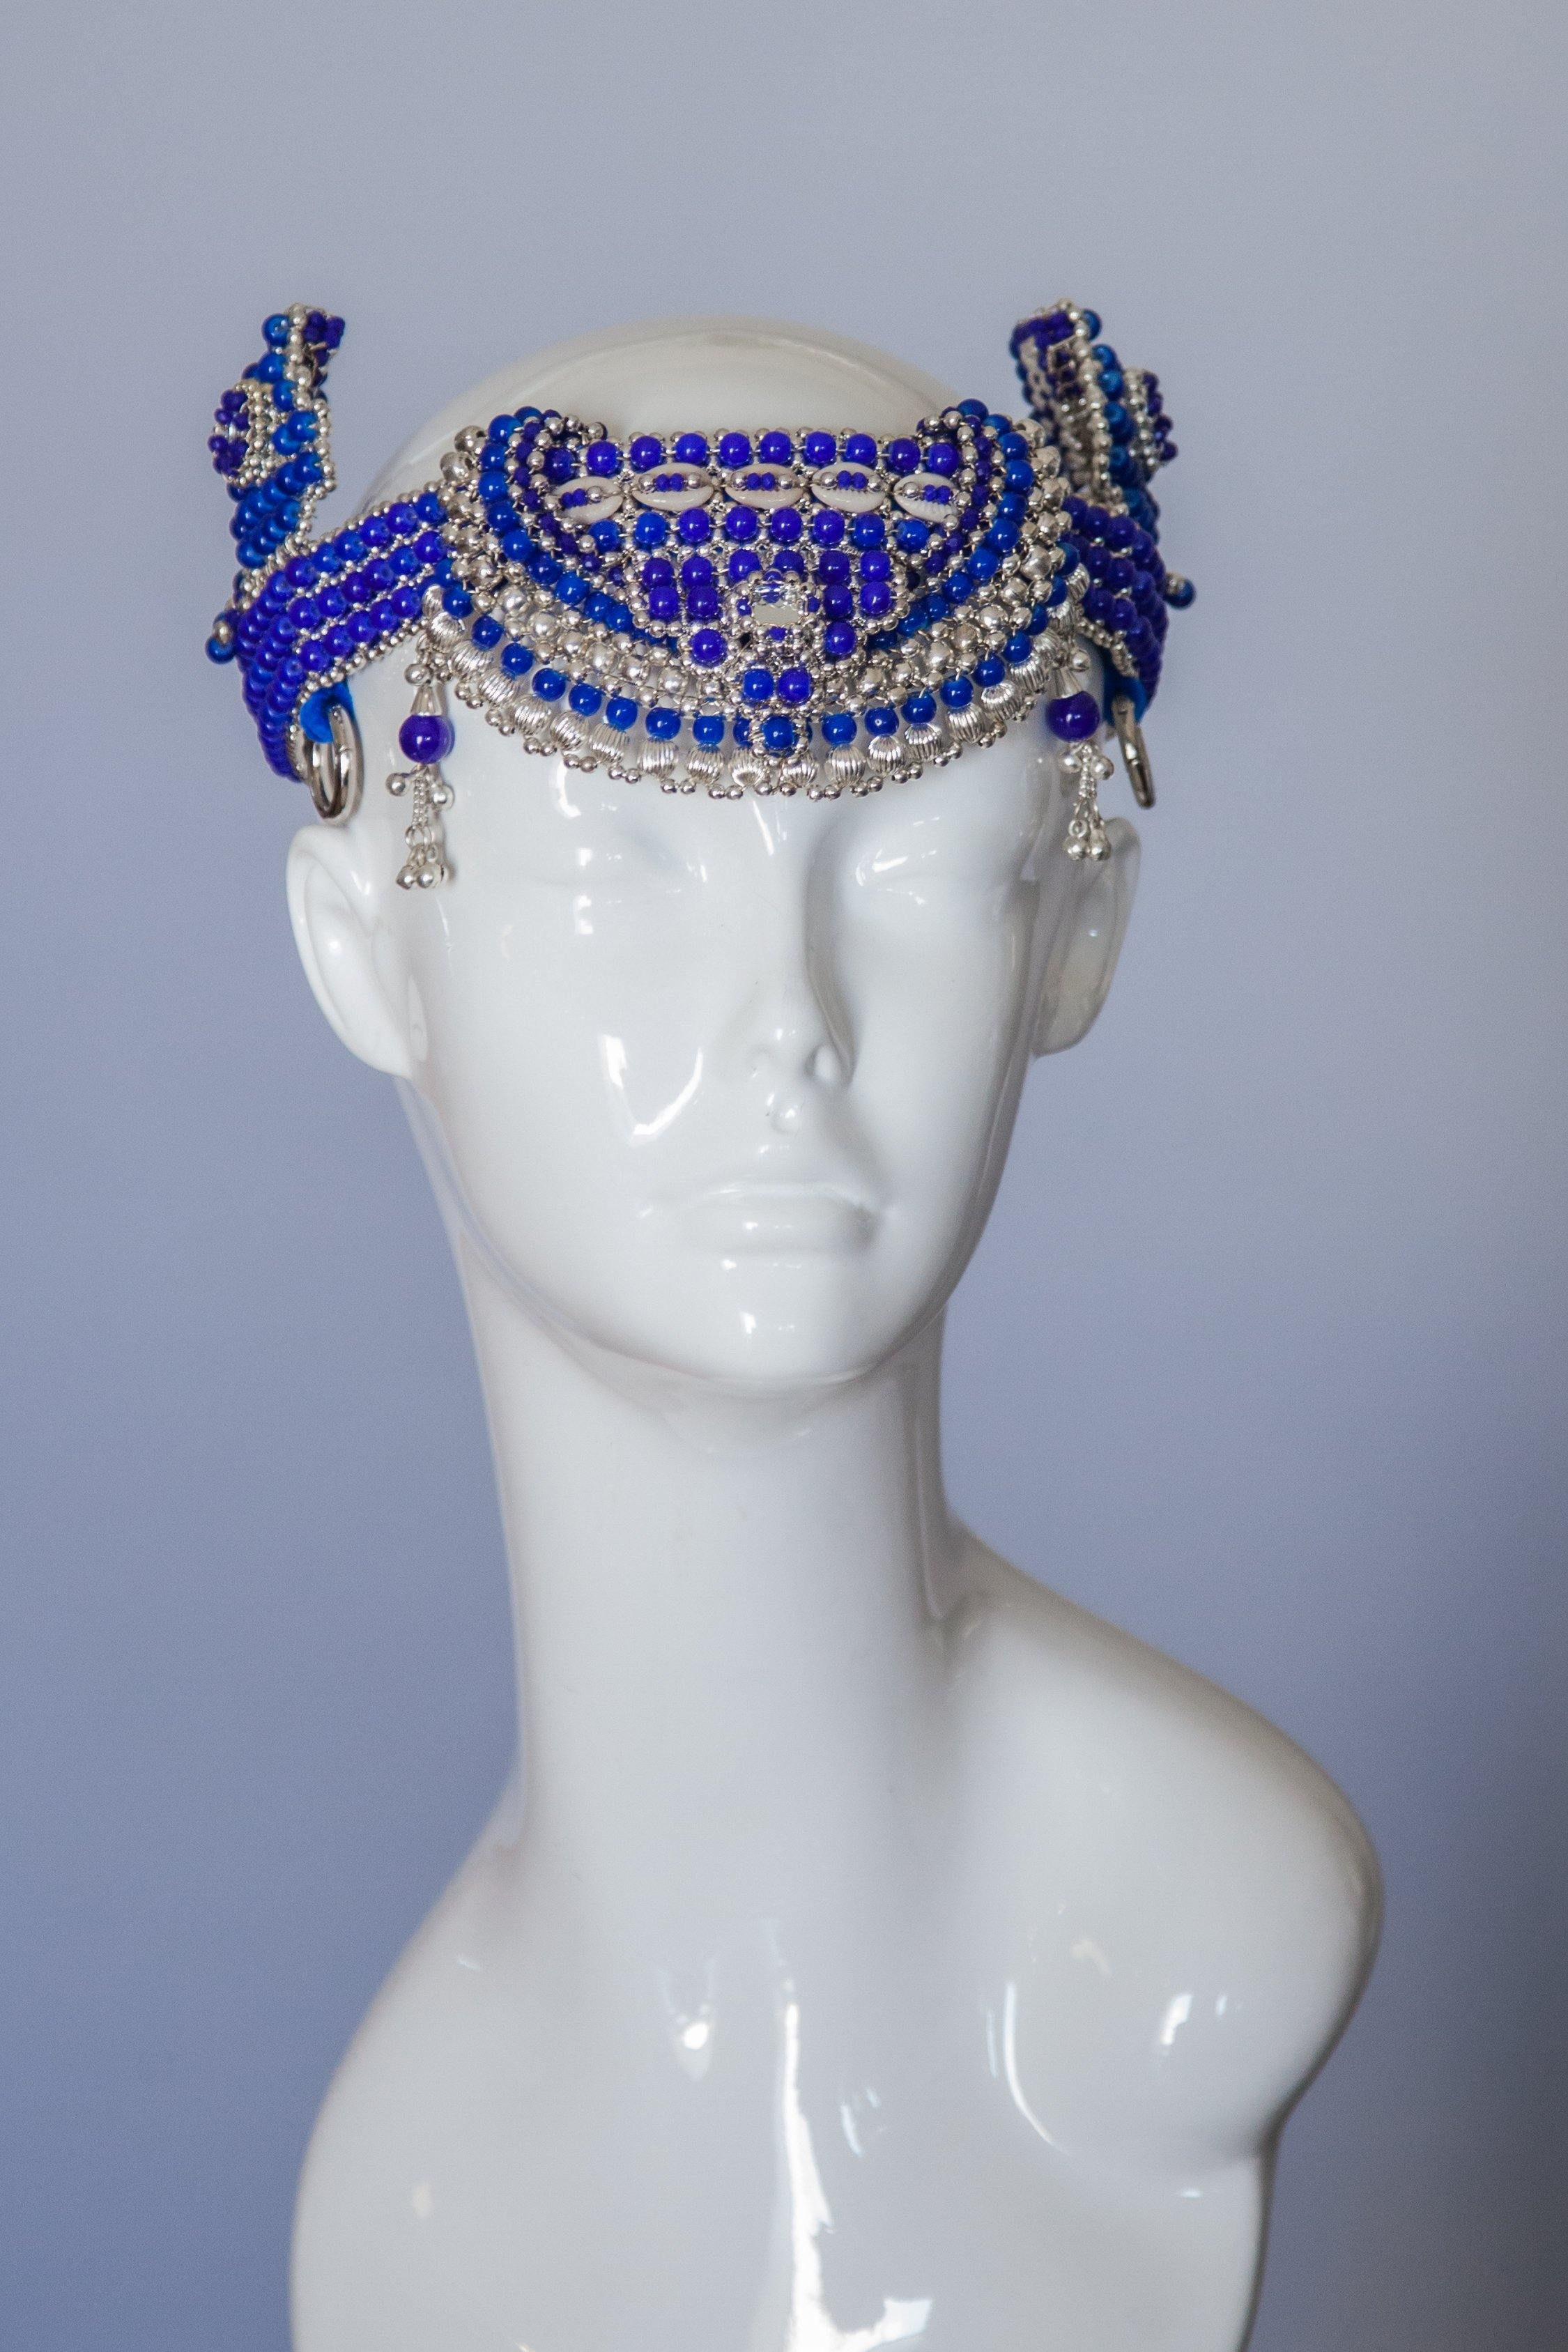 Anais Modular Headpiece System, in Blue